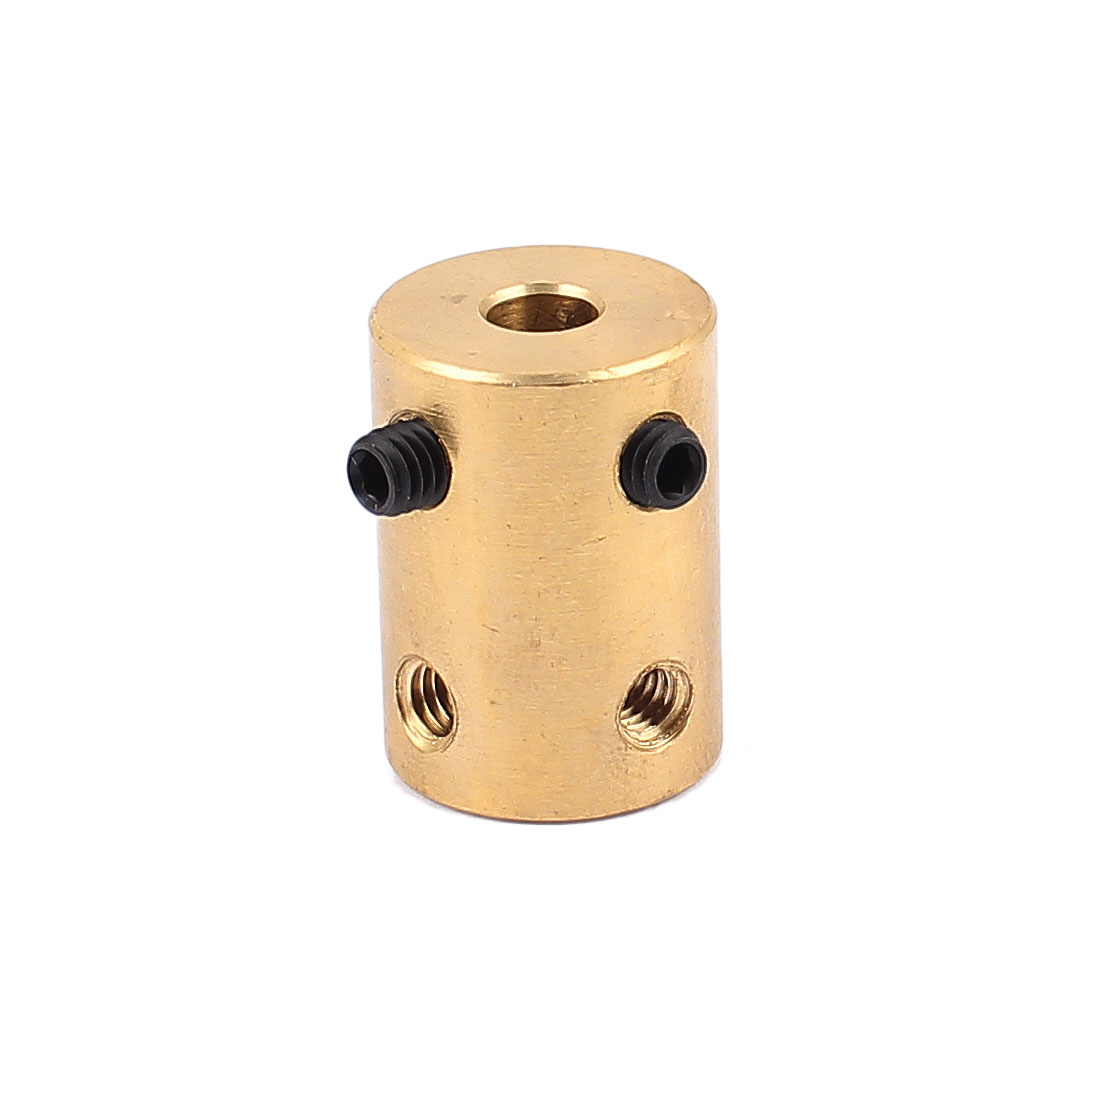 5mm to 5mm Copper DIY Motor Shaft Coupling Joint Adapter for Electric Car Toy